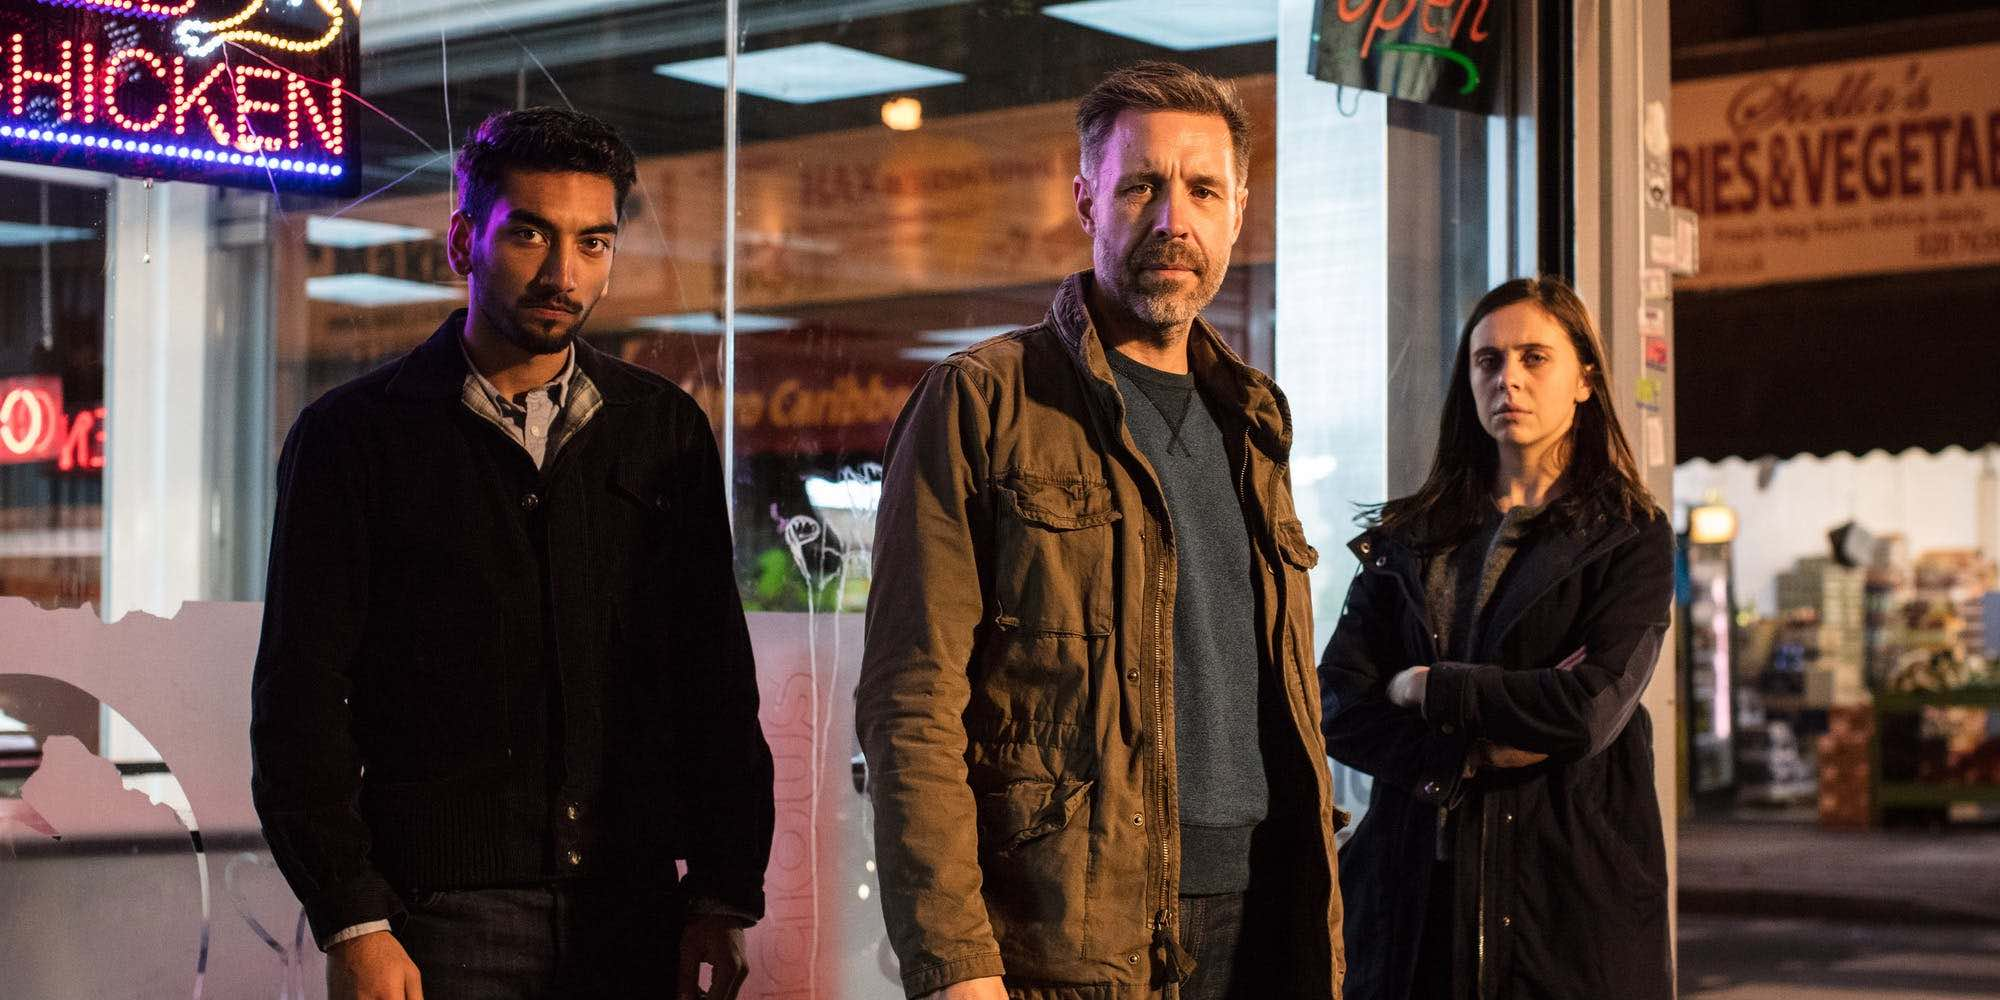 'Informer' is a thrilling six-part drama from the UK following a British-born Pakistani man reluctantly pushed into a counterterrorism position.